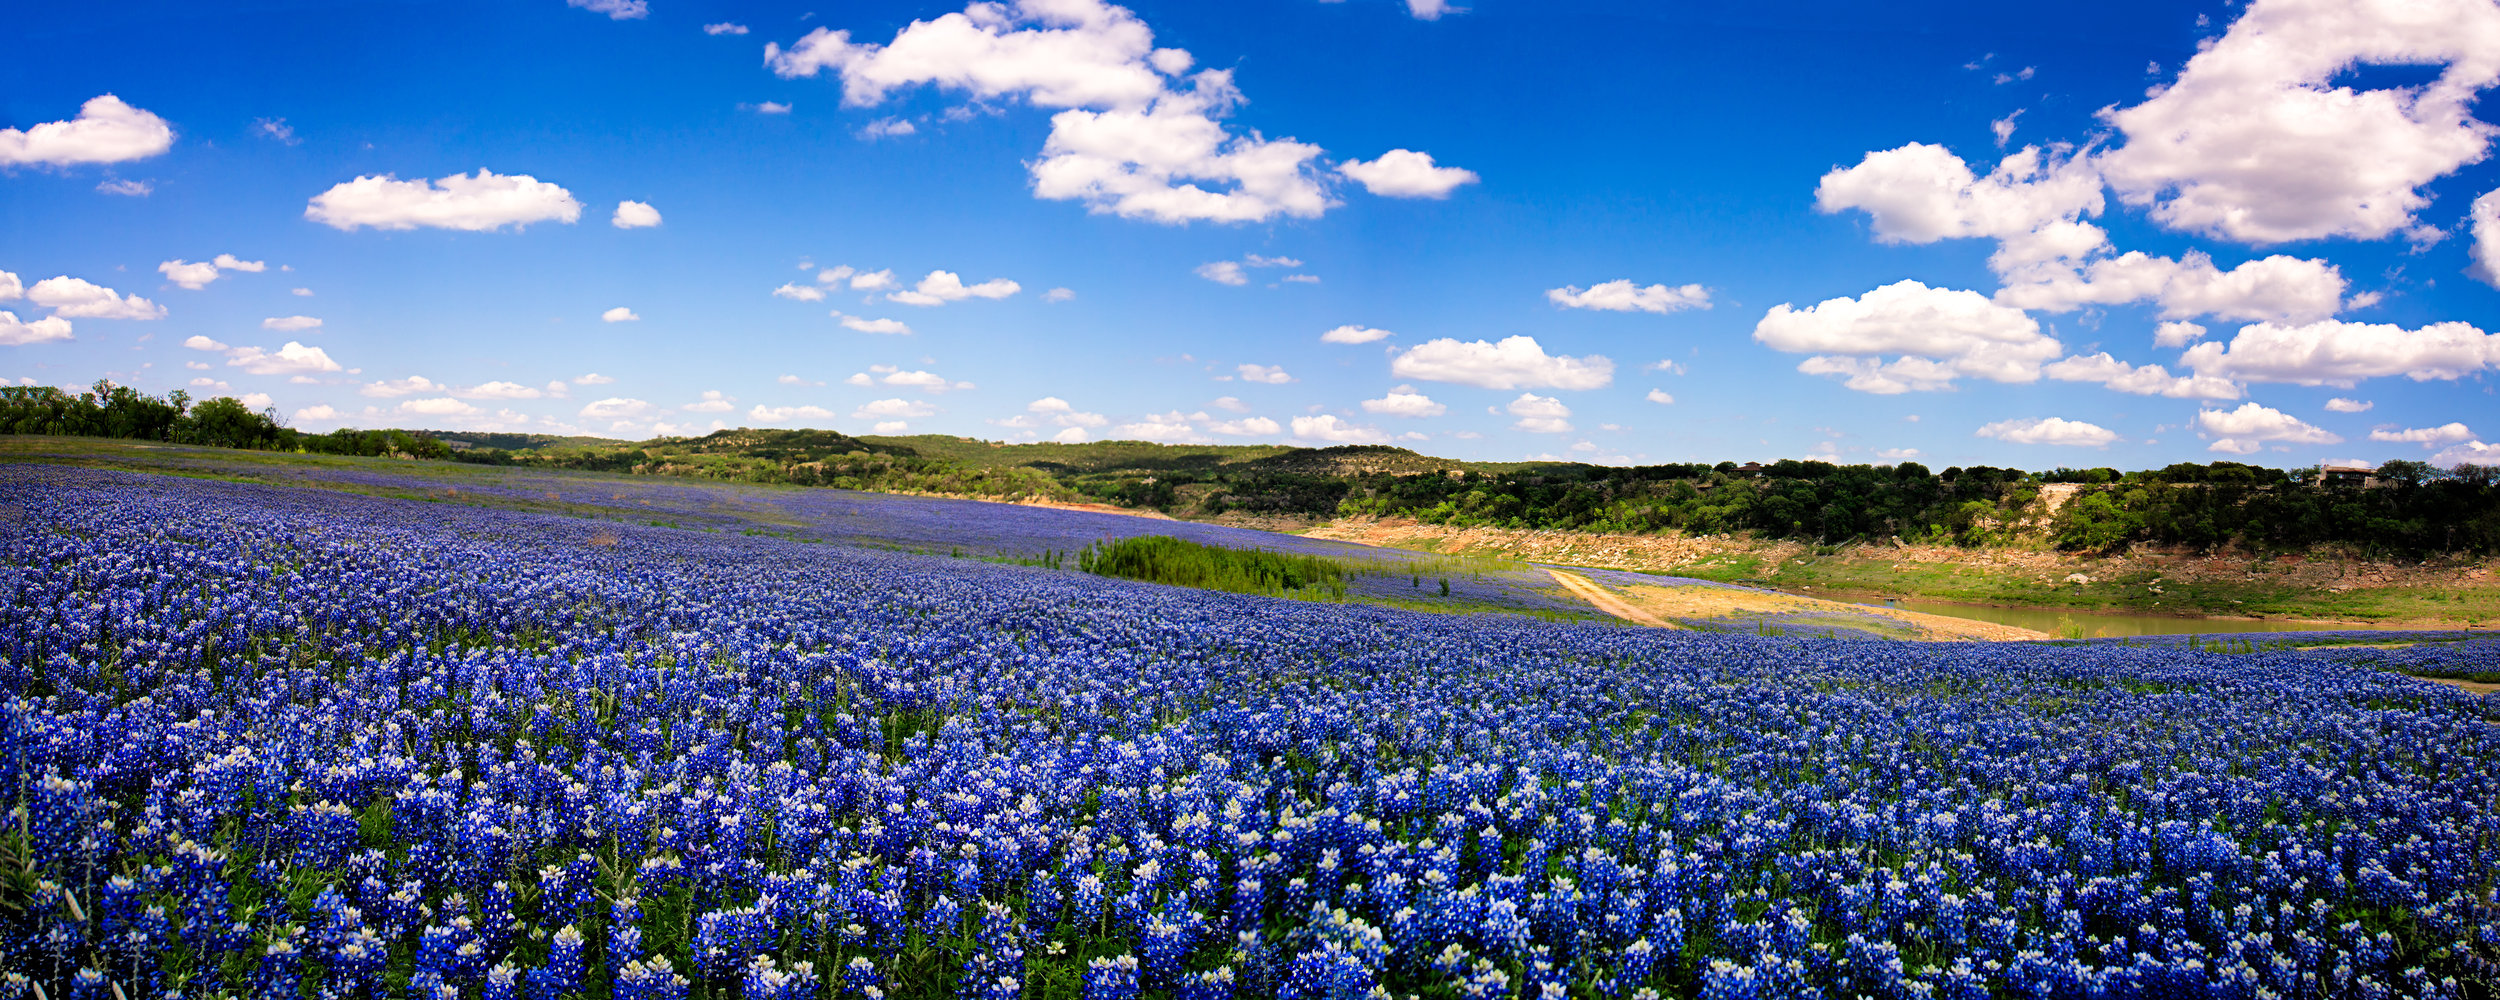 bluebonnets 2.jpeg